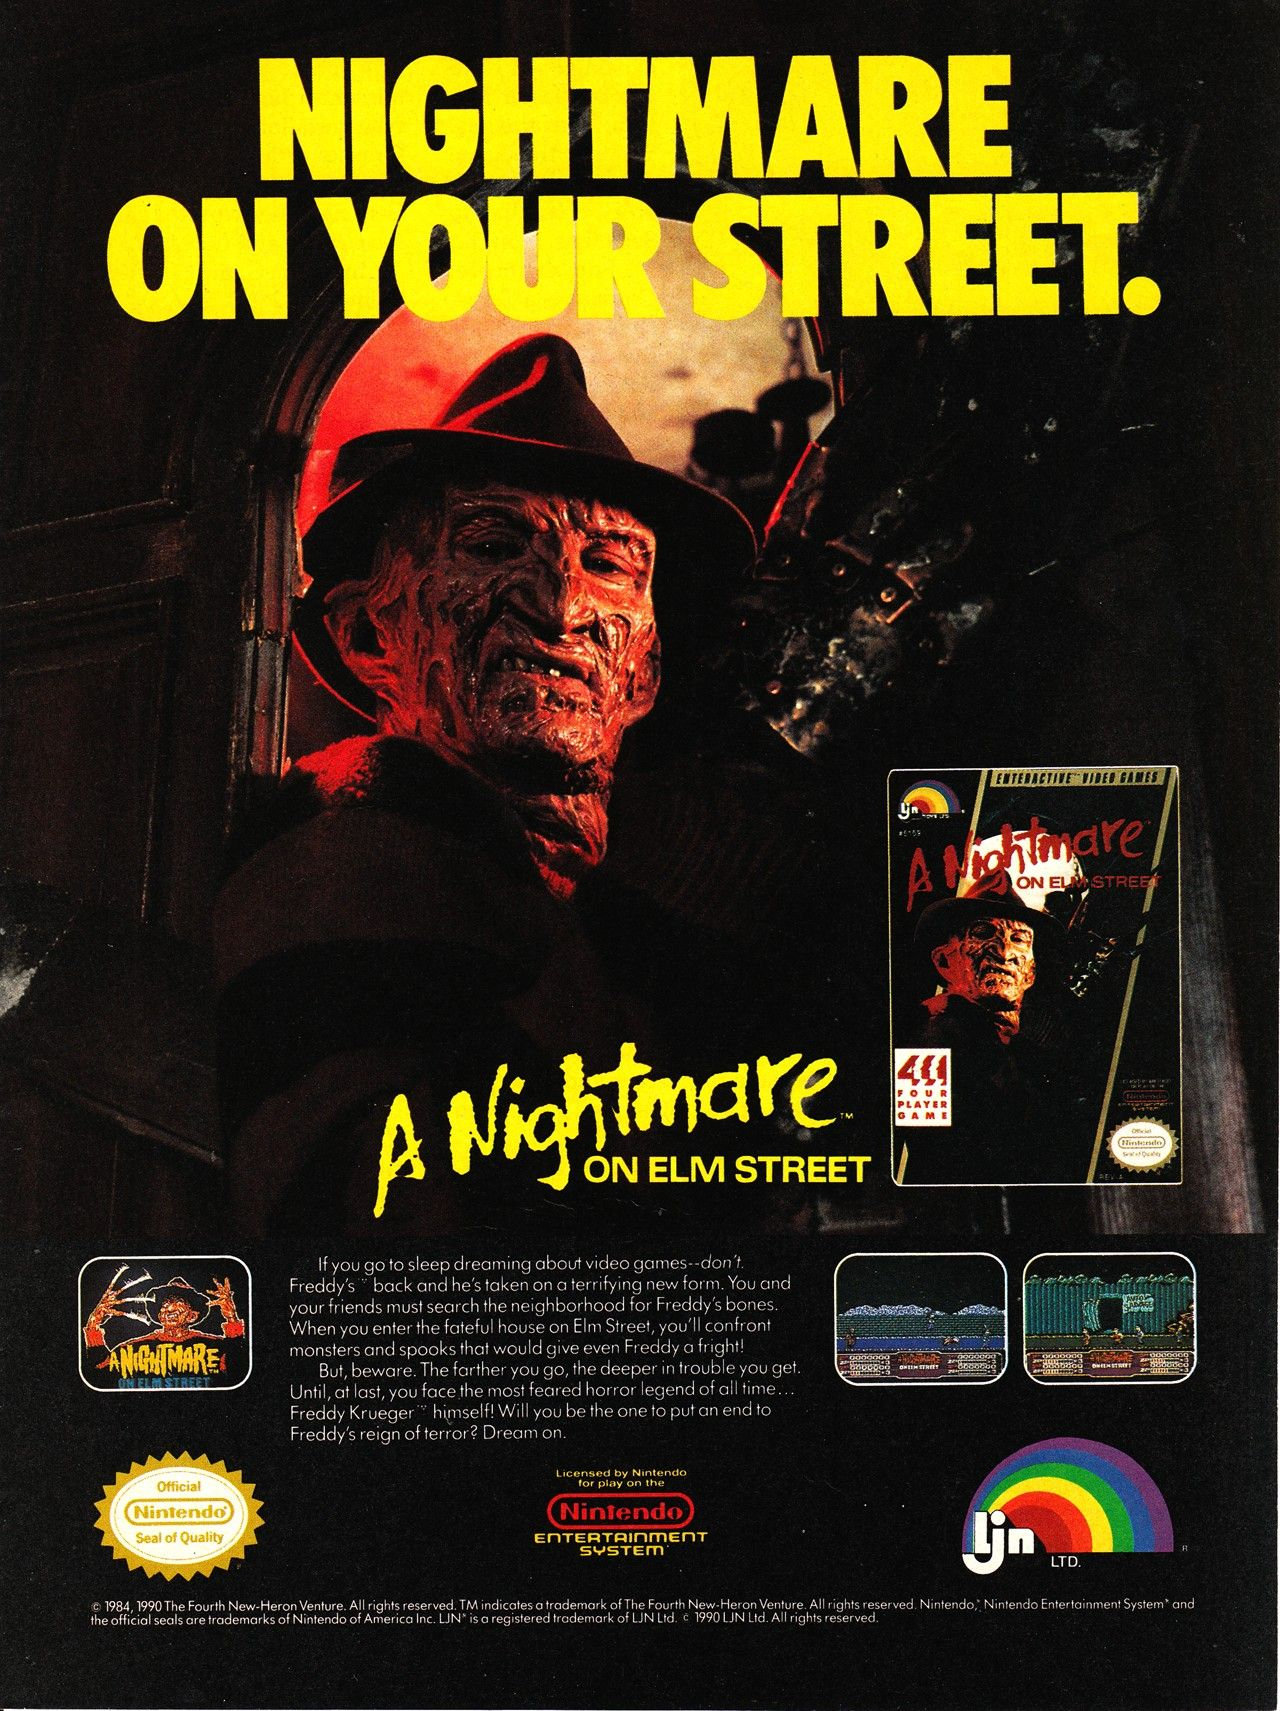 A Nightmare on your own Street from those lovable... Old